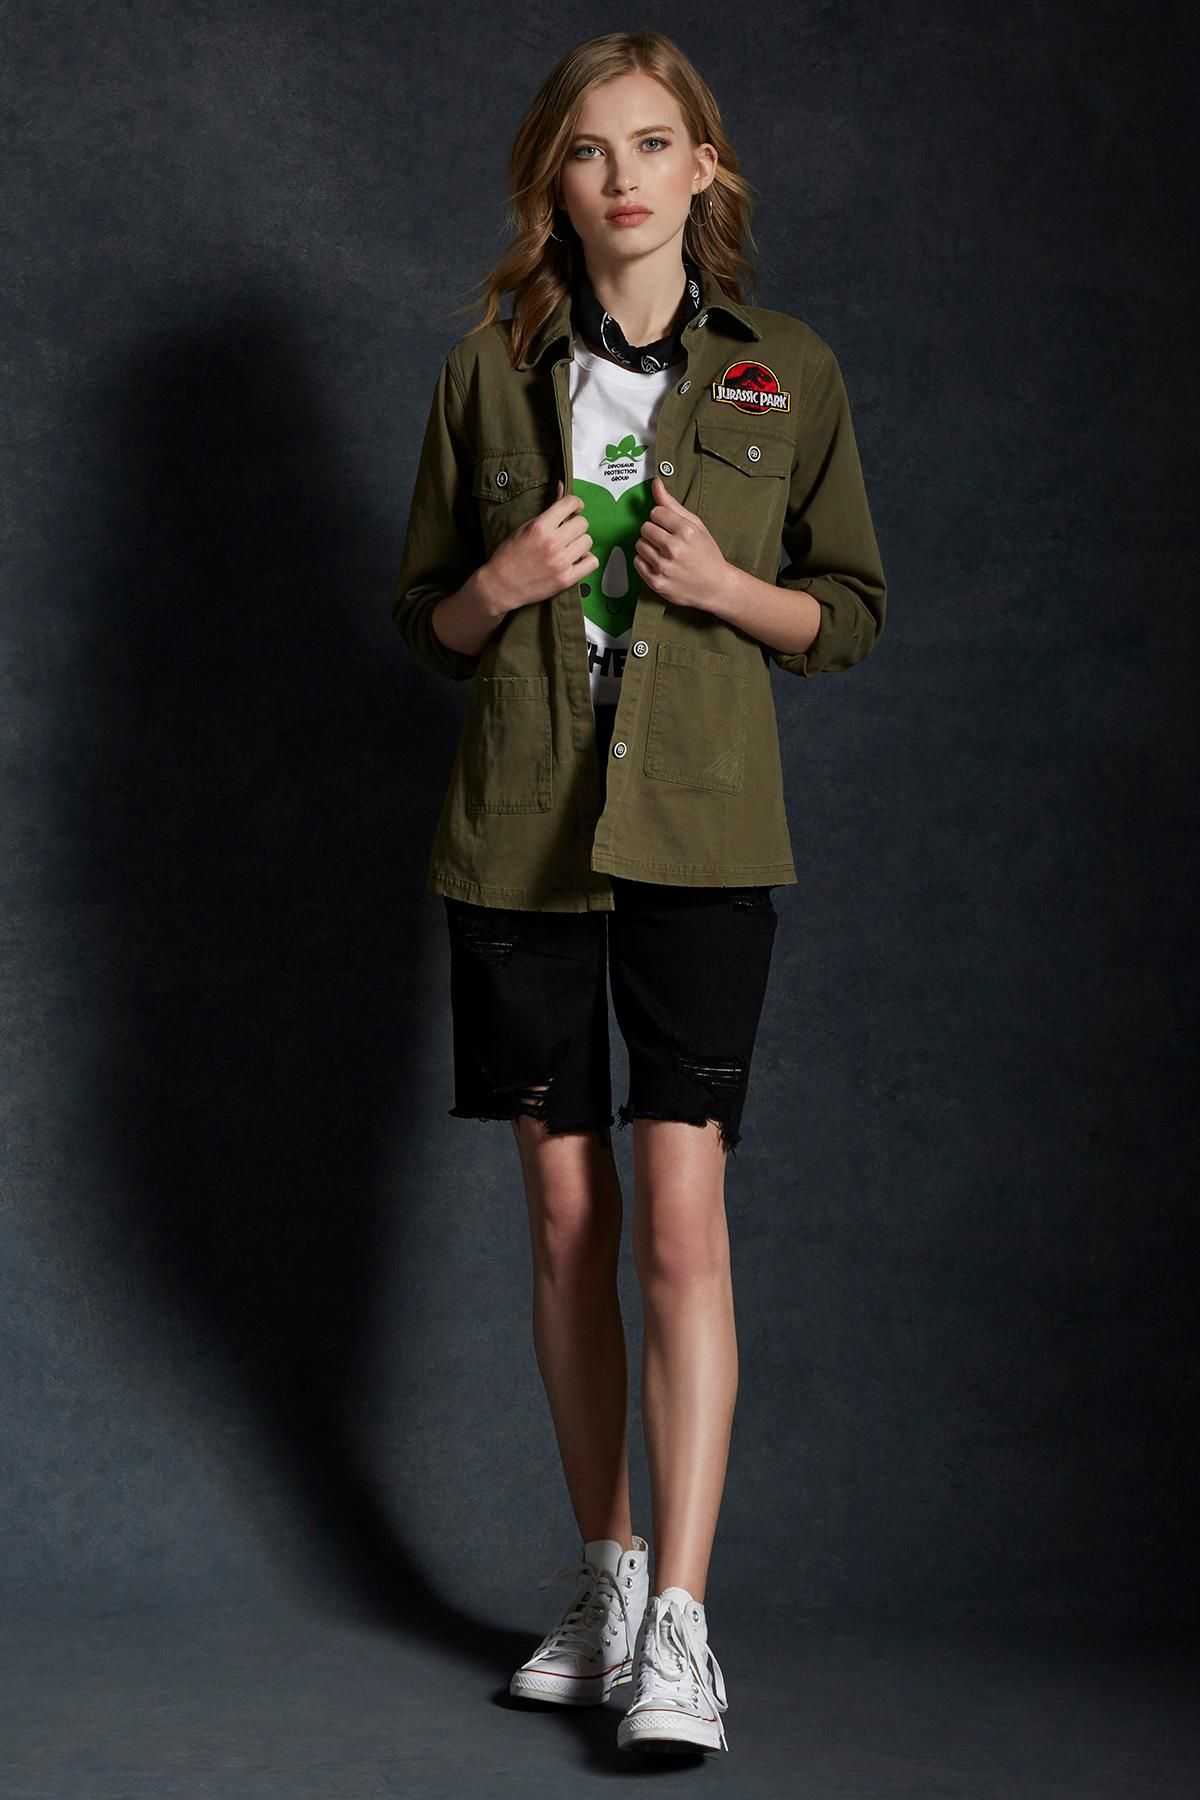 ac9ac05cd4bdc A fashion collection 65 million years in the making    Jurassic Park  Destructed Girls Staff Jacket